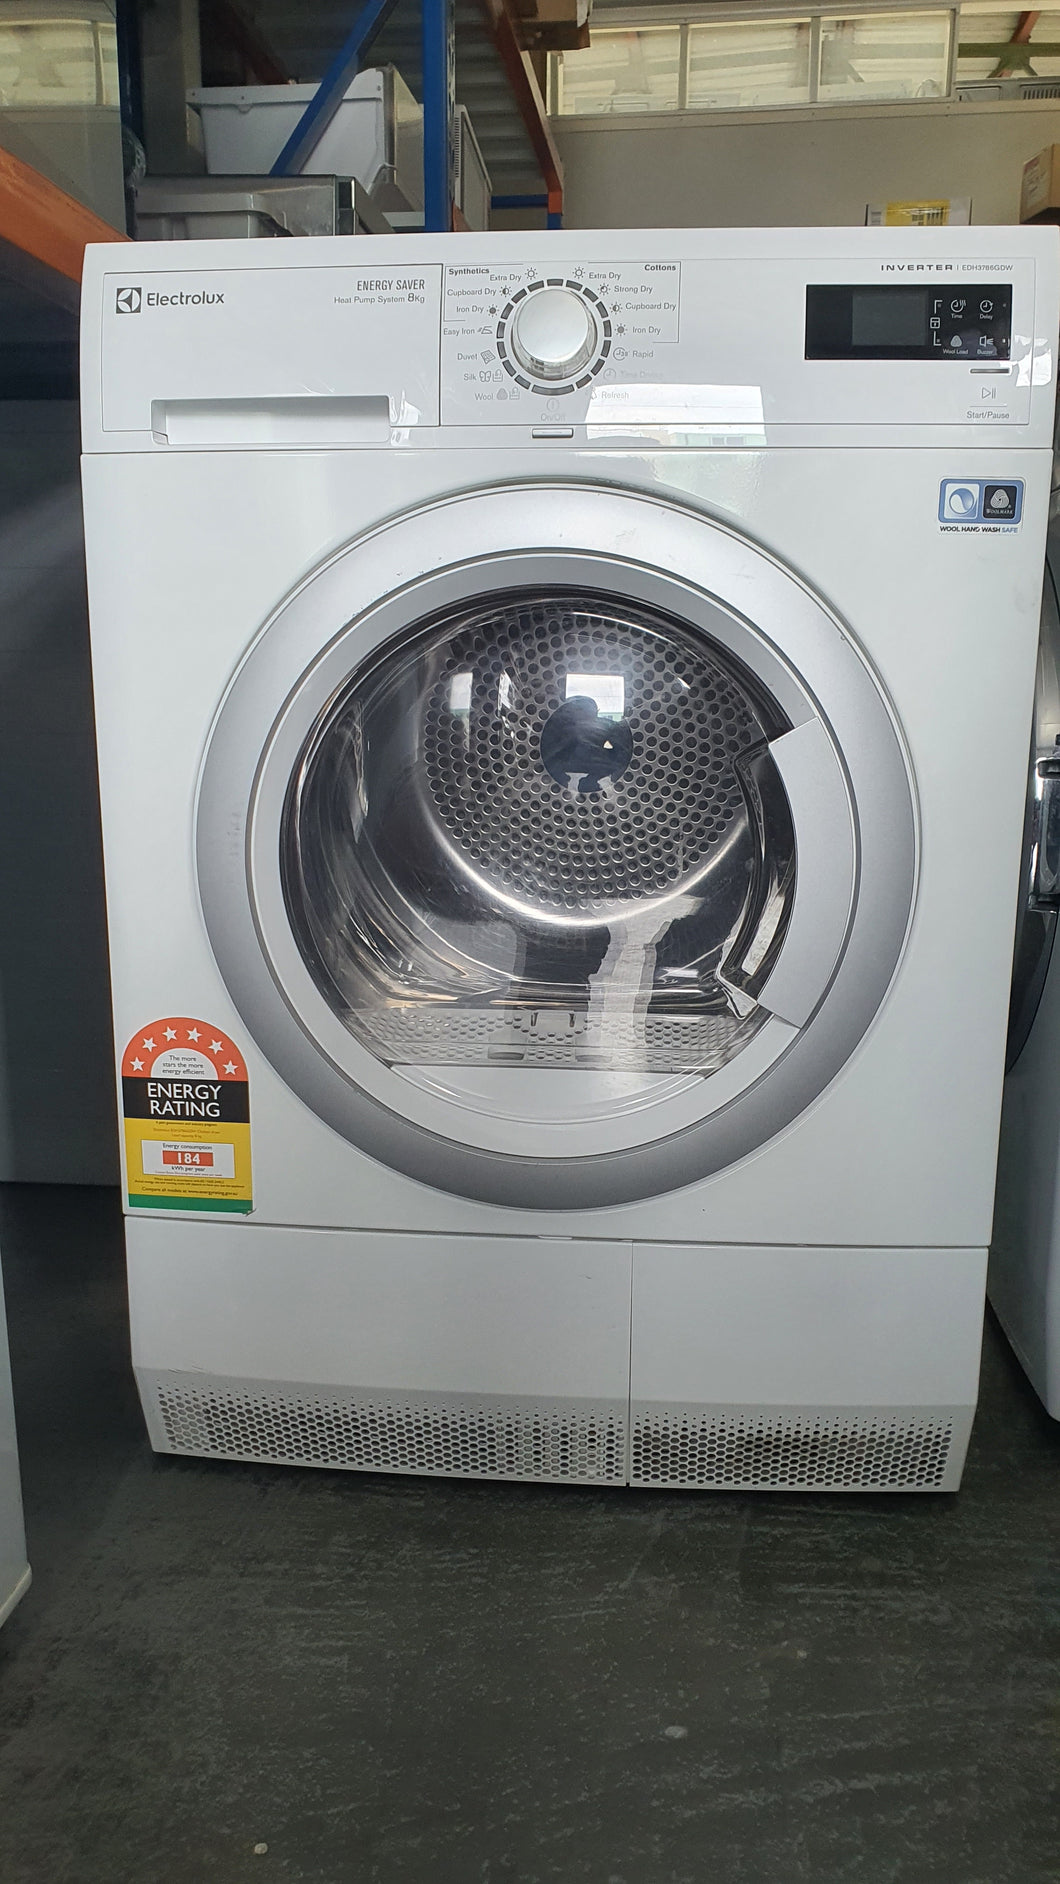 Electrolux 8kg Heat Pump Dryer [6 Star Energy Rating]